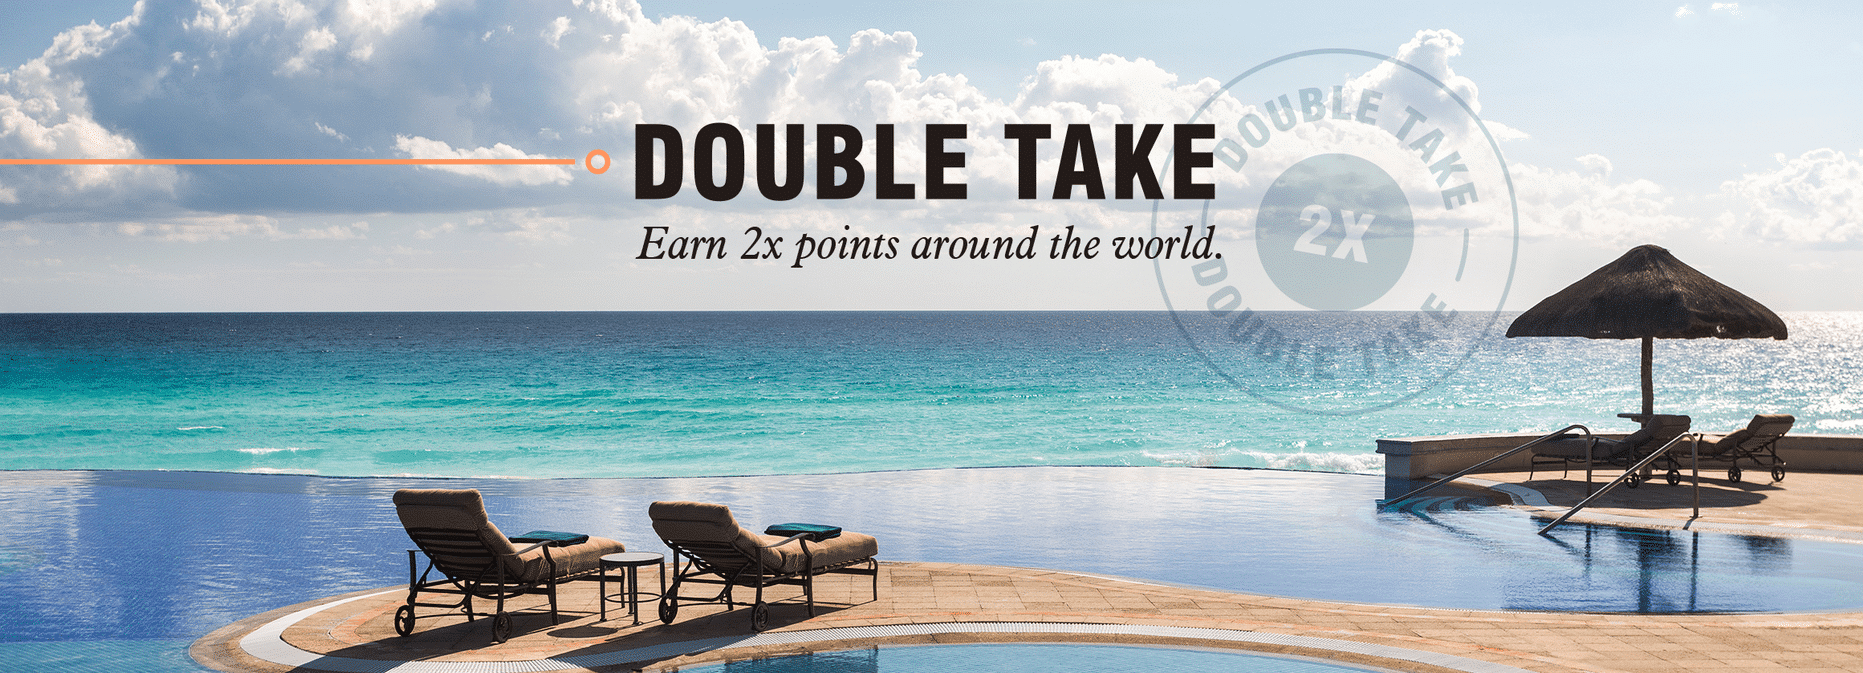 Marriott Bonvoy Spring 2019 Promotion: Double Take